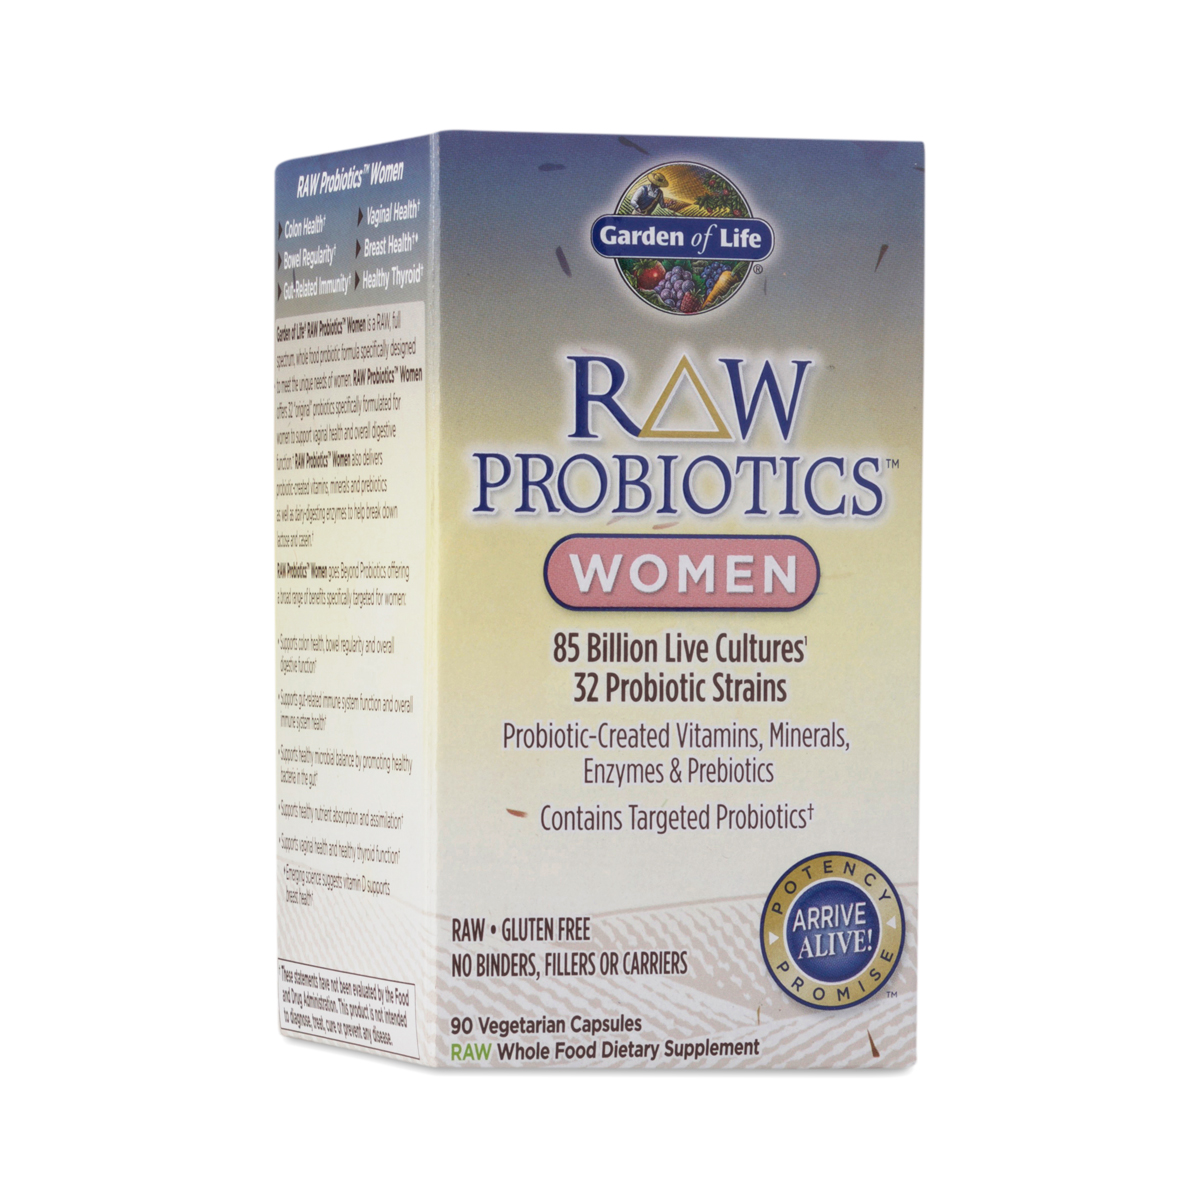 Raw Probiotics for Women by Garden of Life - Thrive Market